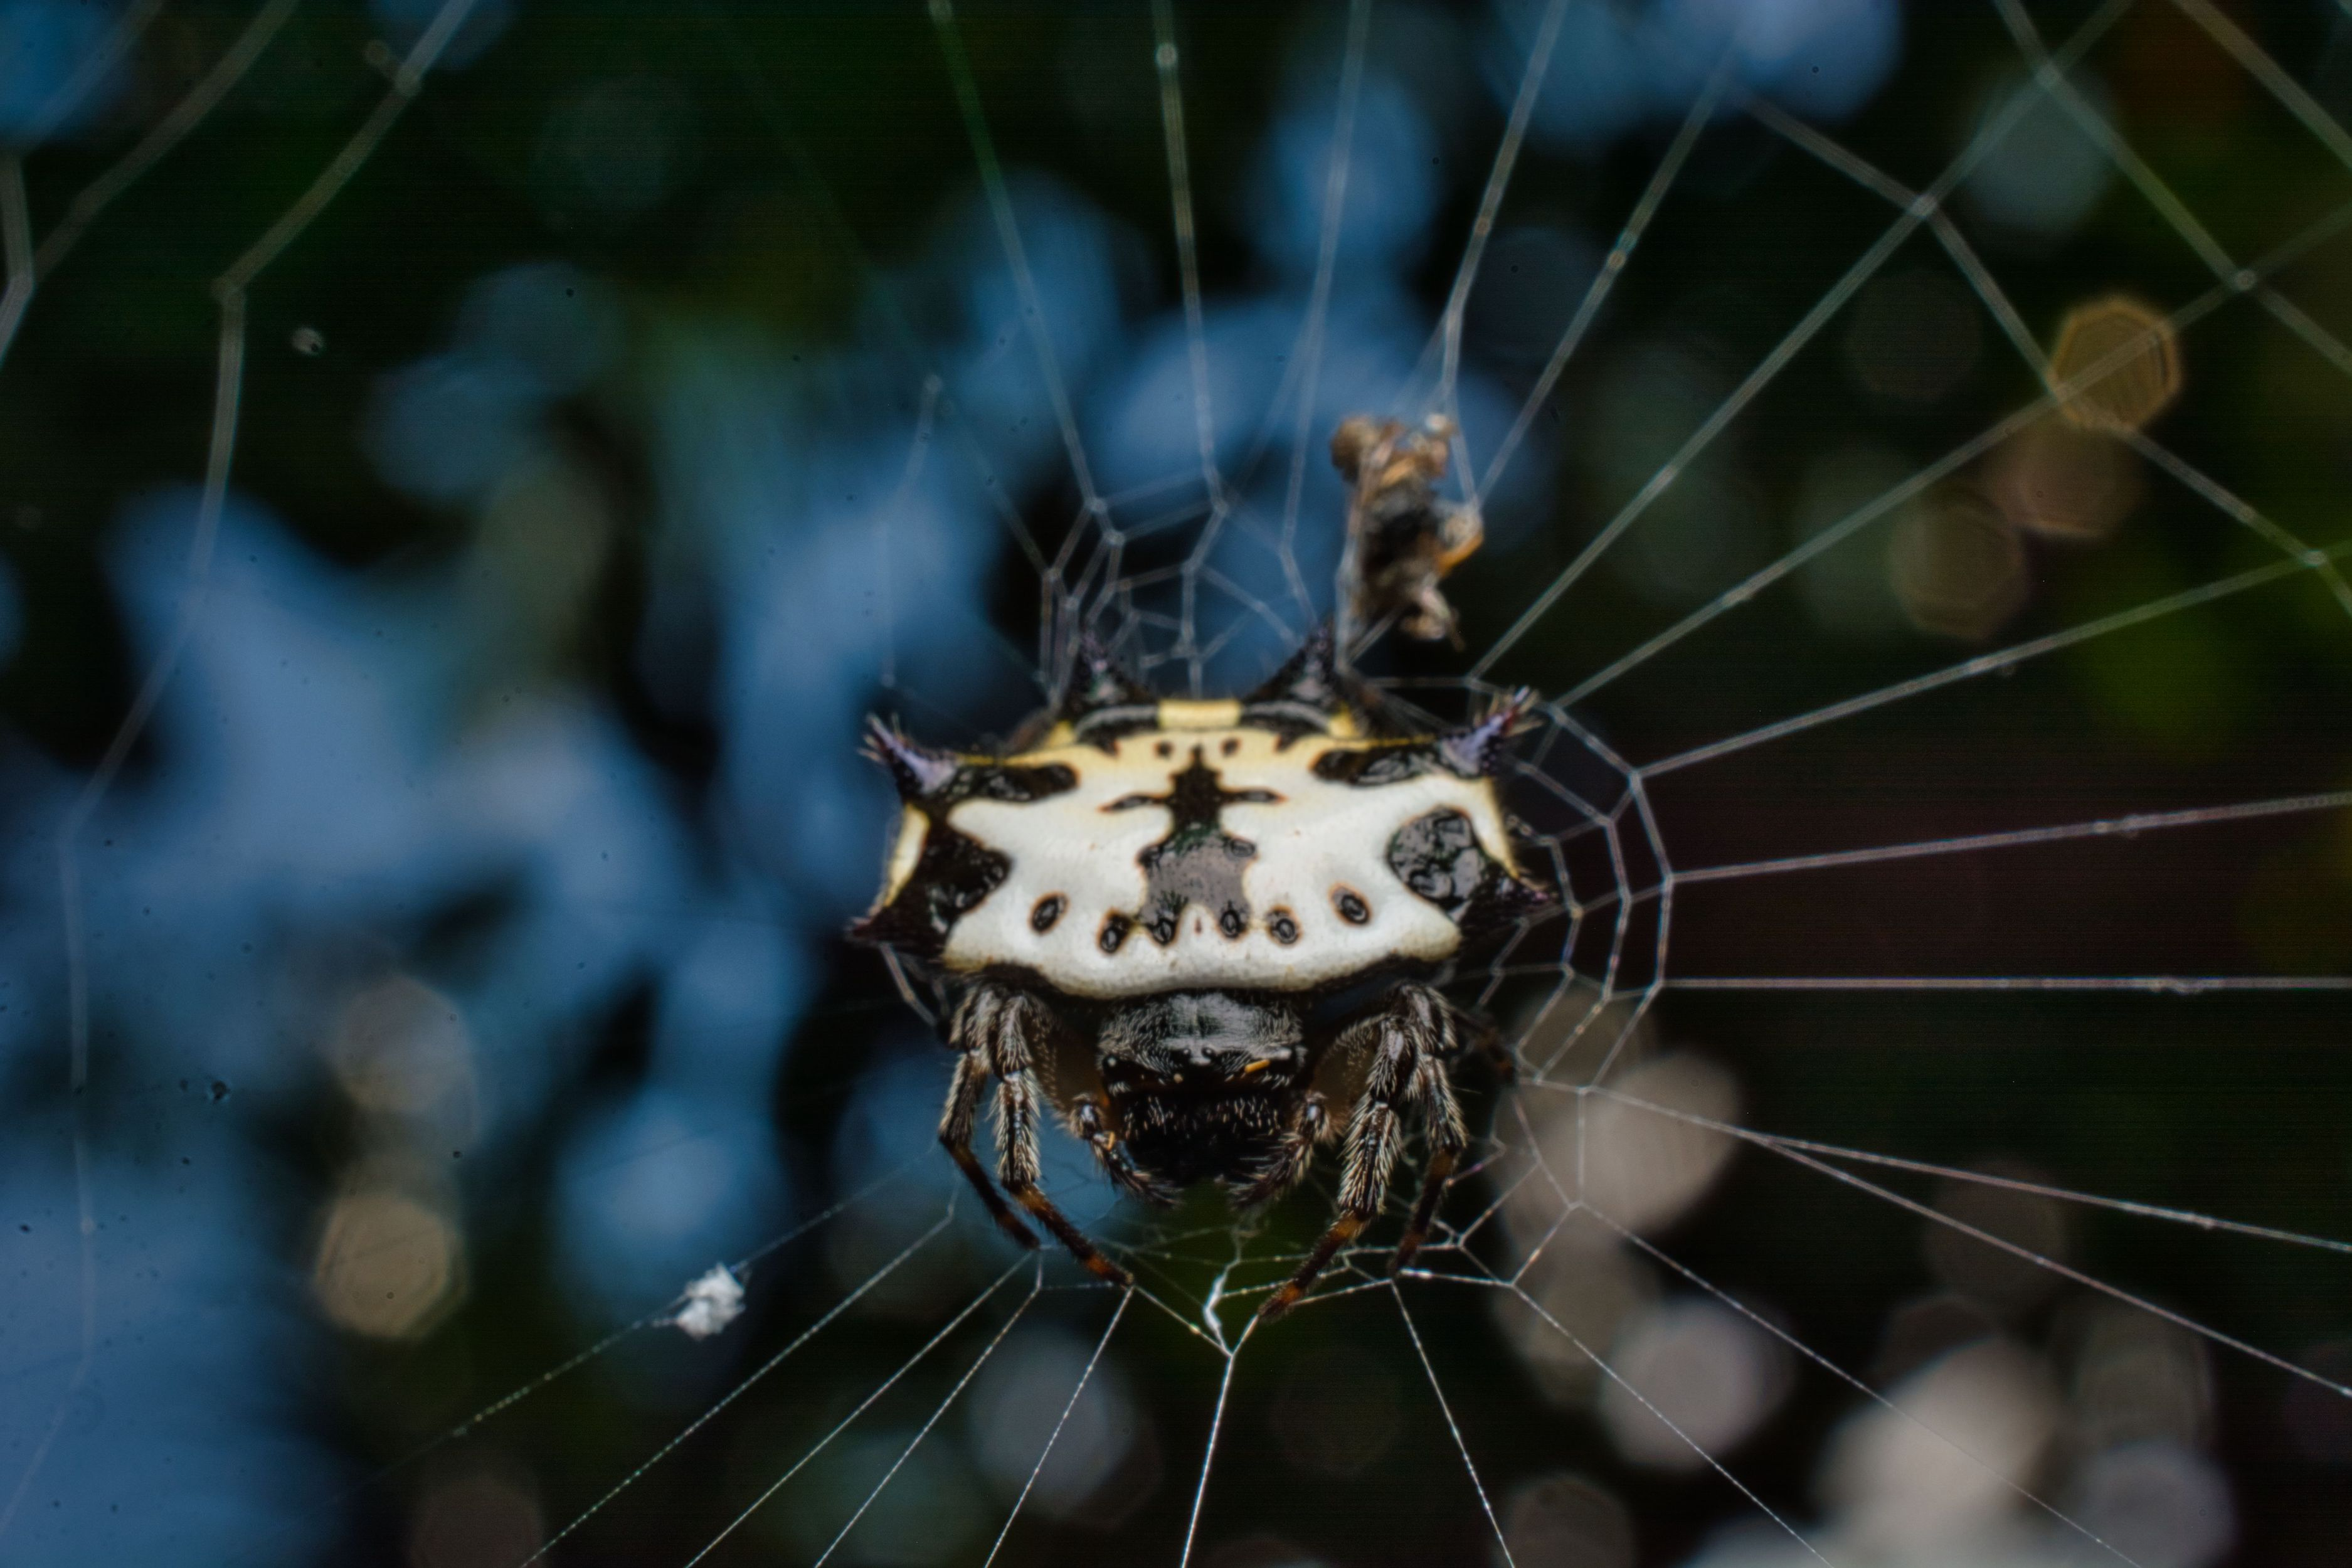 Gasteracantha is a genus of orb-weaver which can be easily distinguished by its signature abdominal spikes. This one is seen resting after a satisfying afternoon meal. Photo: Samuel John